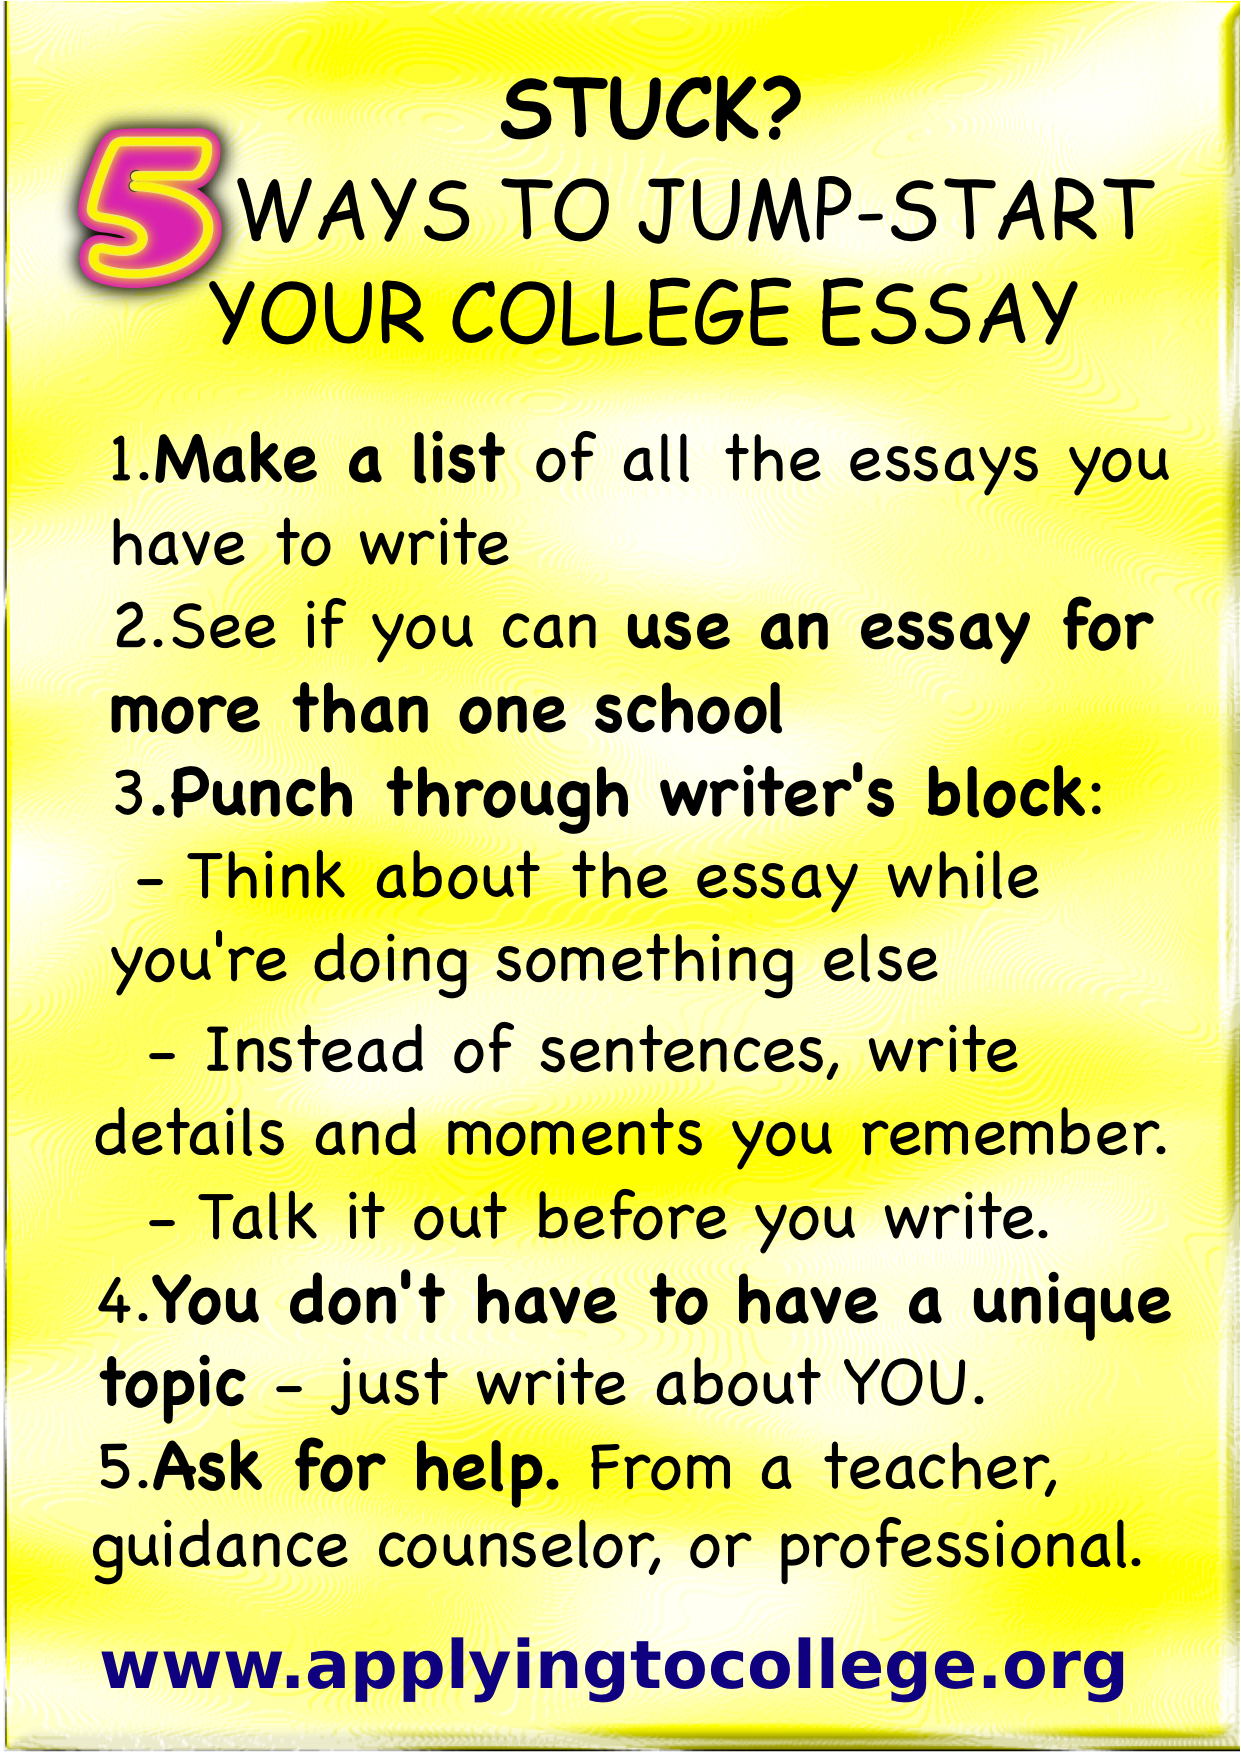 Stuck 5 tips to jump start your college essay applying to college 5 ways to reduce college application essay stress how altavistaventures Images